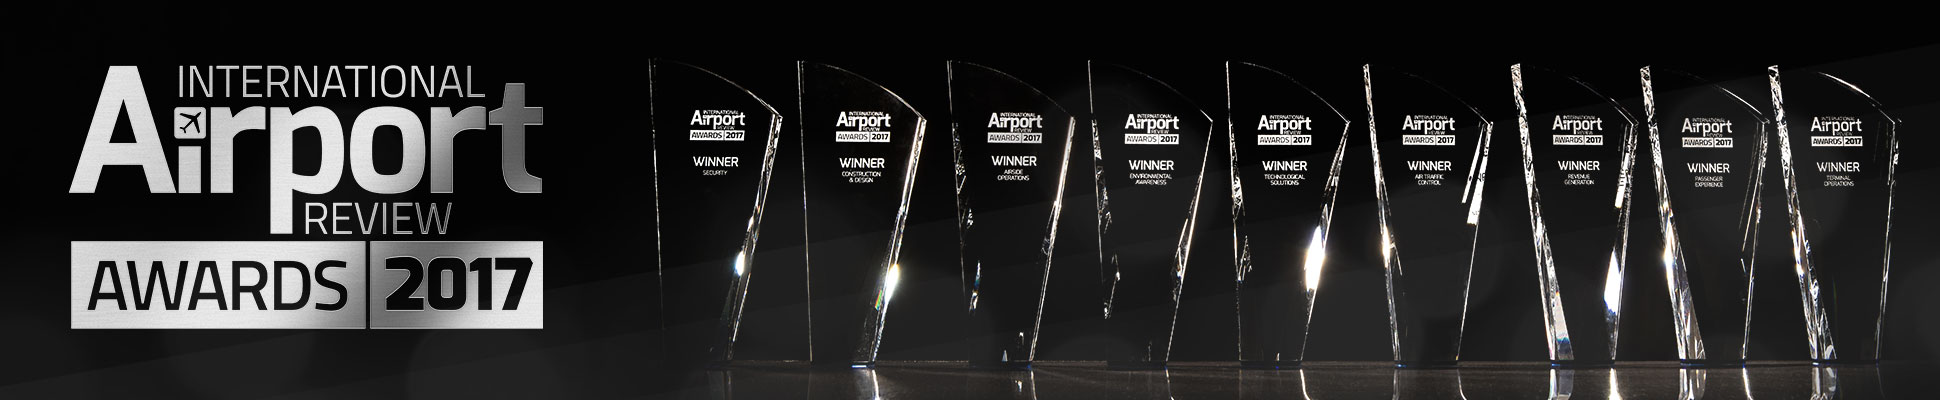 International Airport Review Awards 2017 - Winners Announced